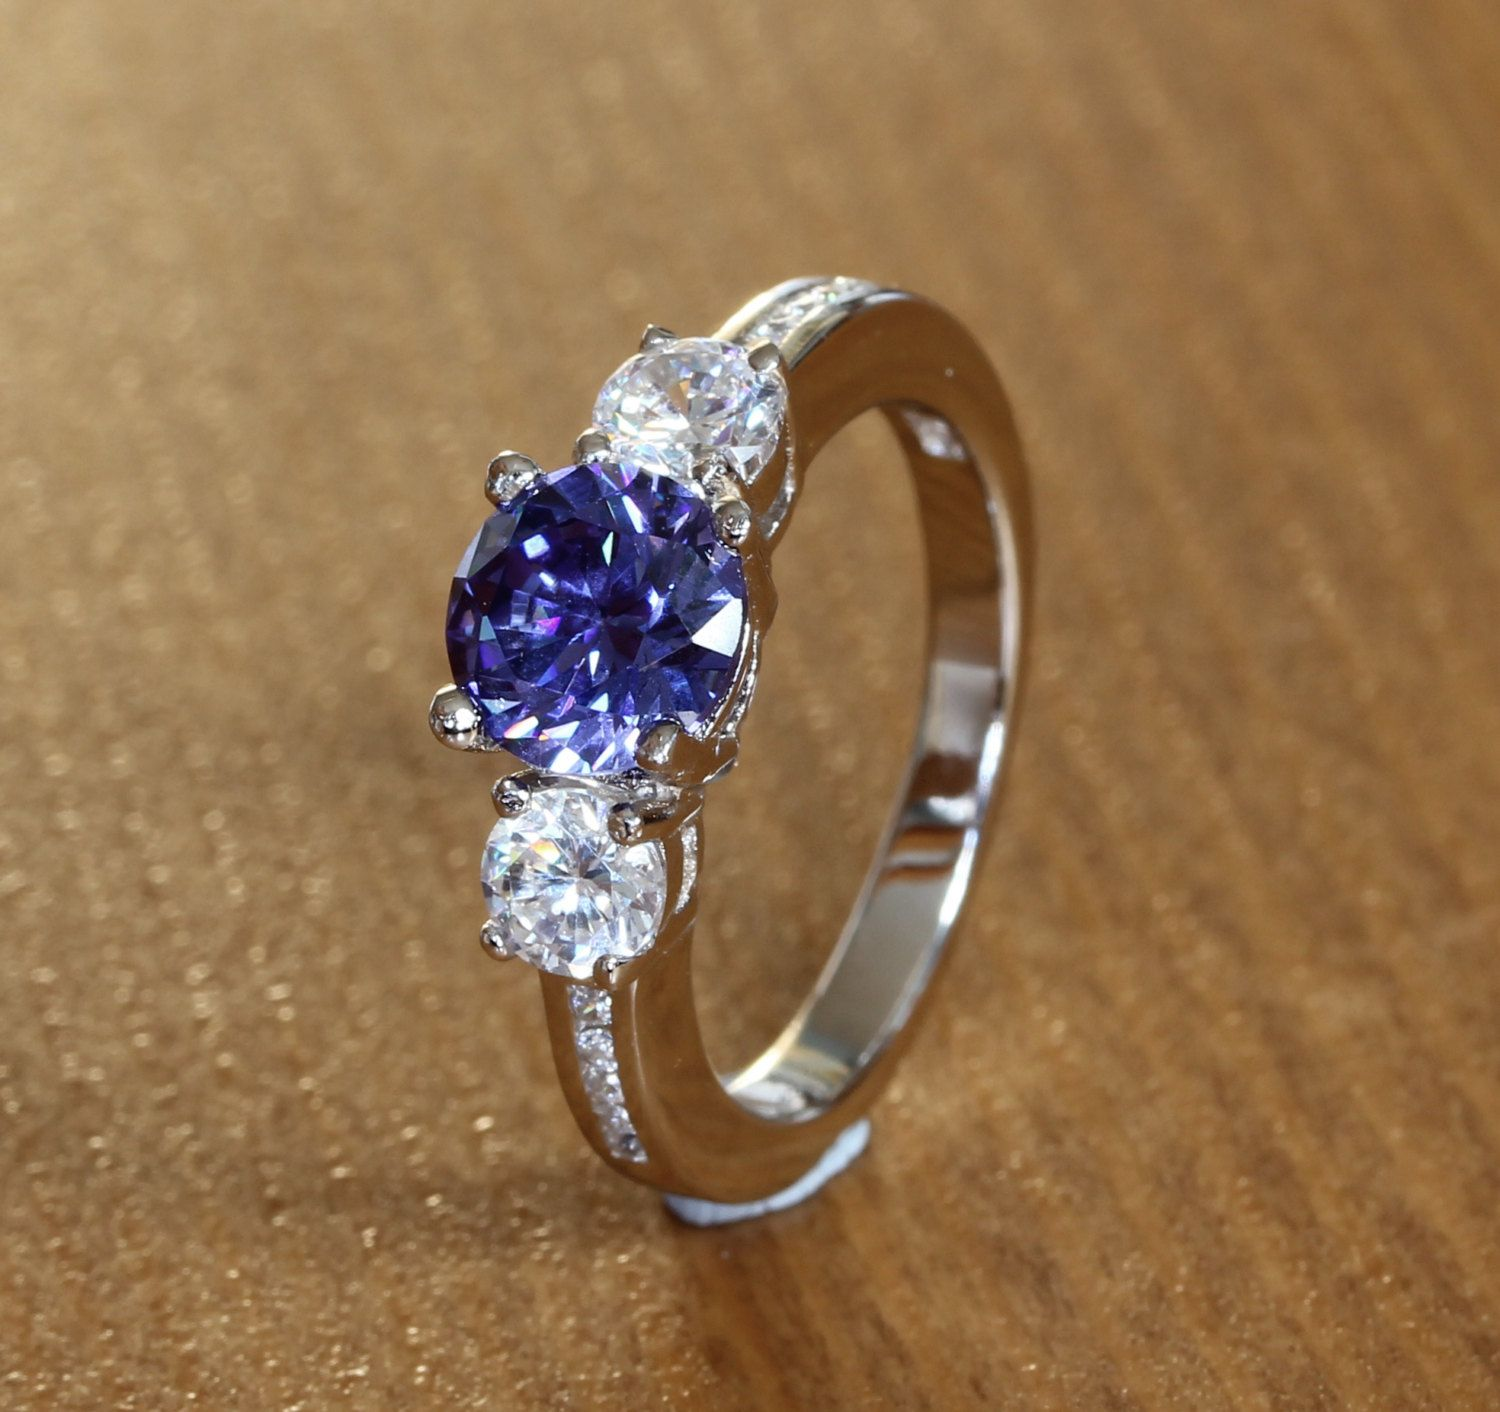 si tanzanite diamond ring rings h paragon engagement and image product white gemstone gold